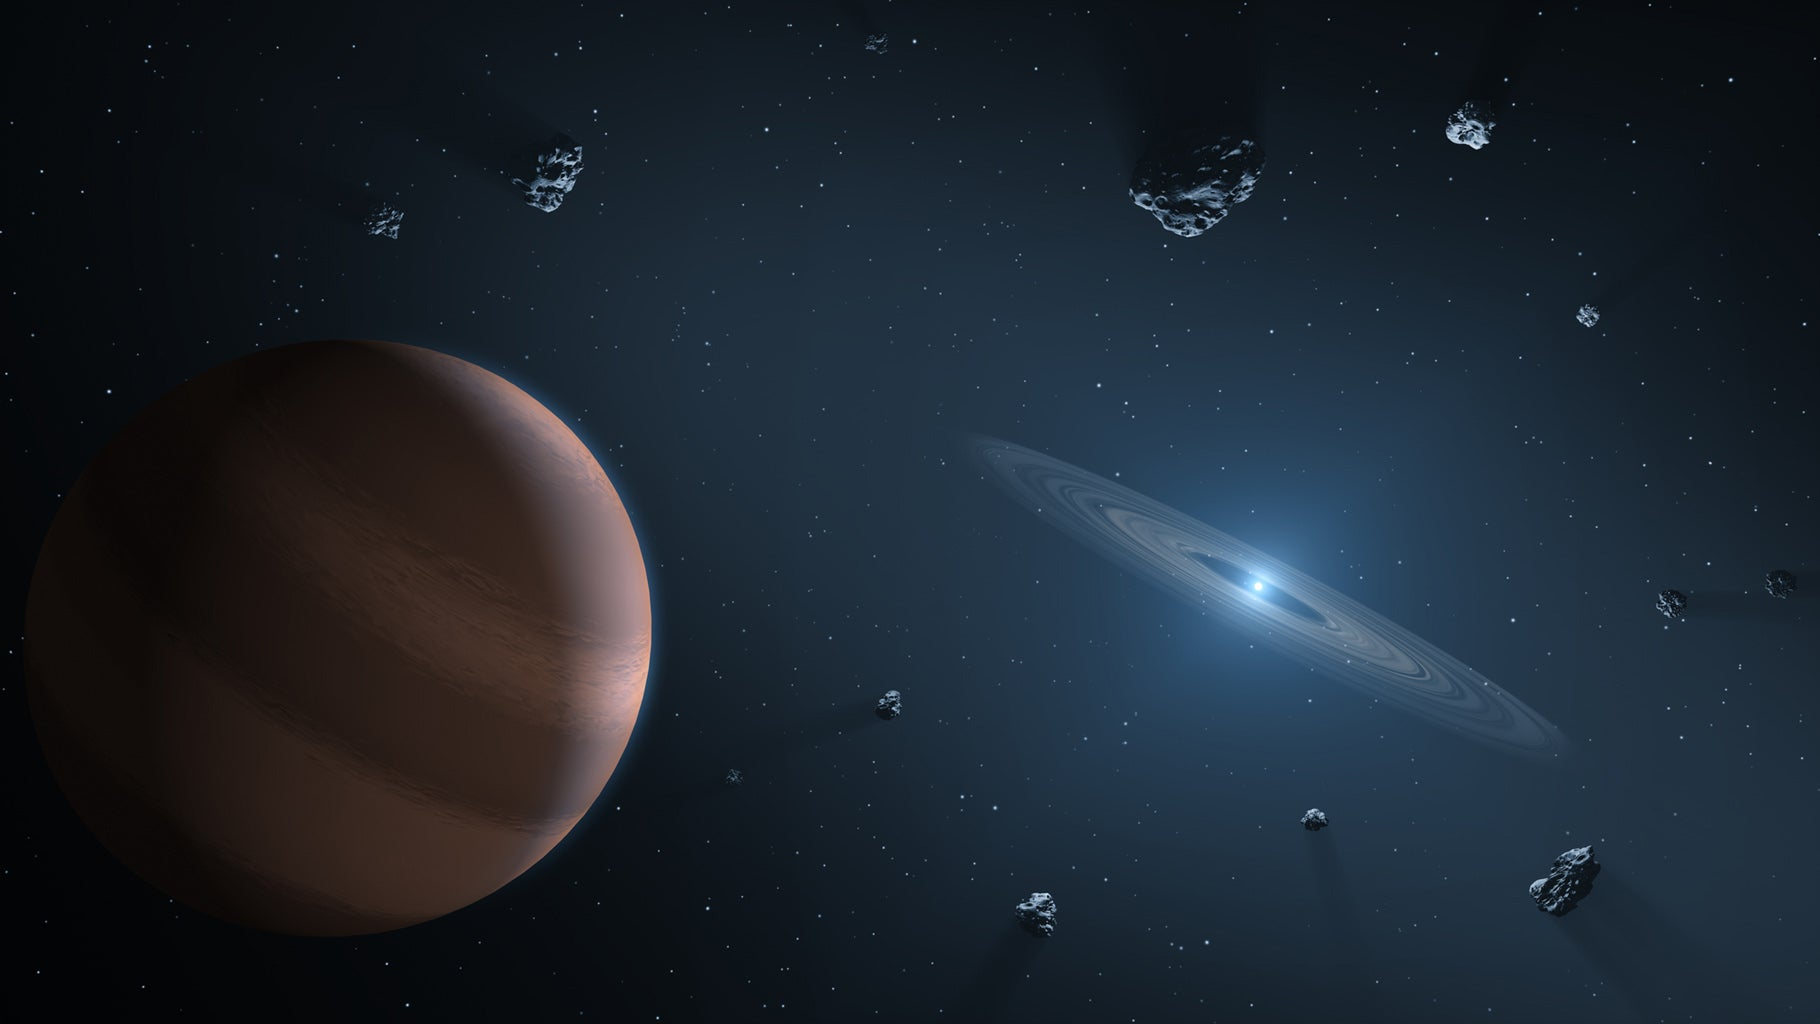 artists impression of a polluted white dwarf star